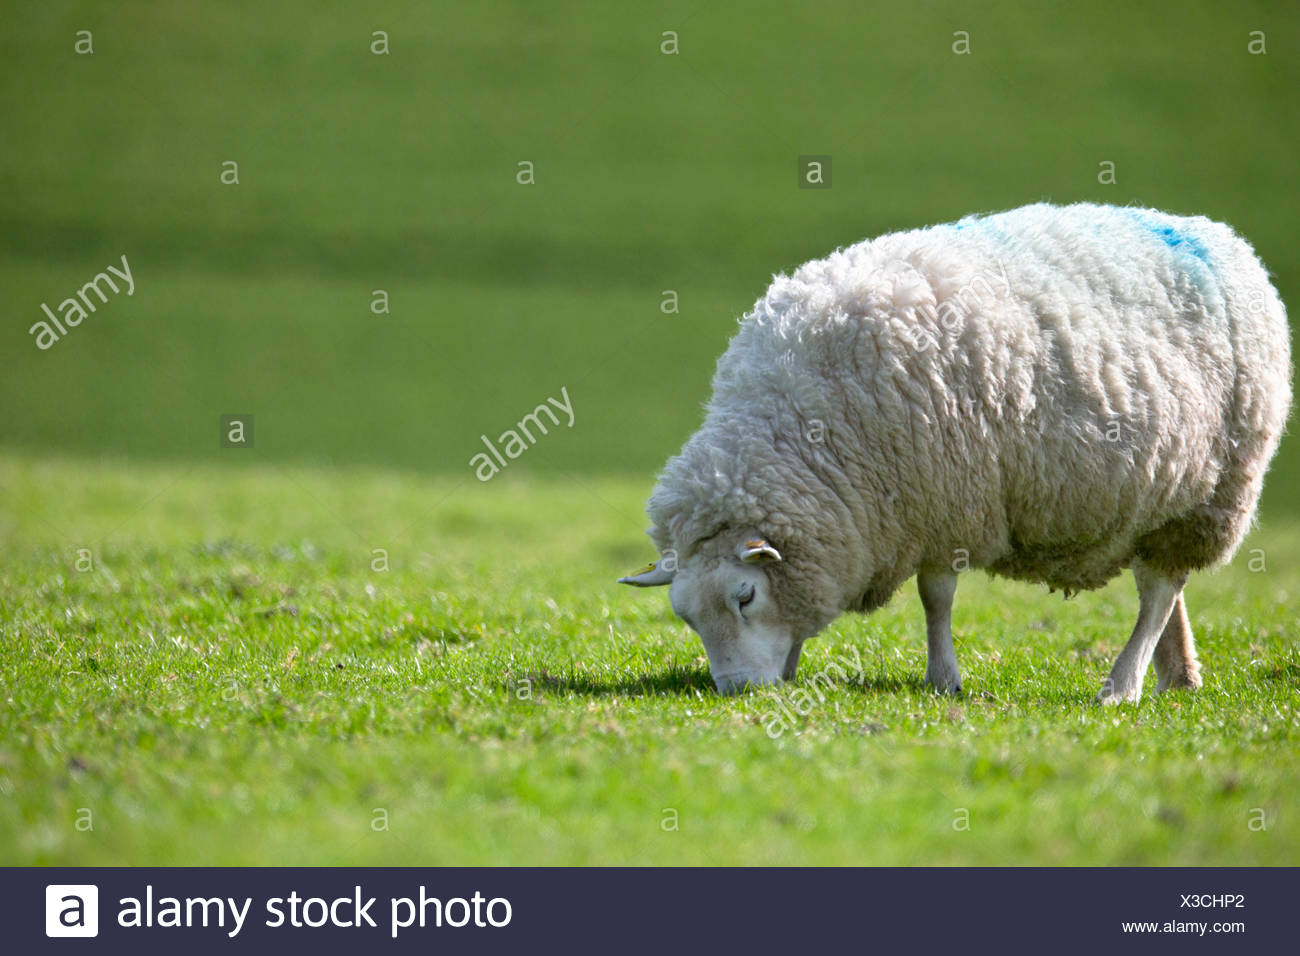 Sheep grazing in sunny green summer field - Stock Image